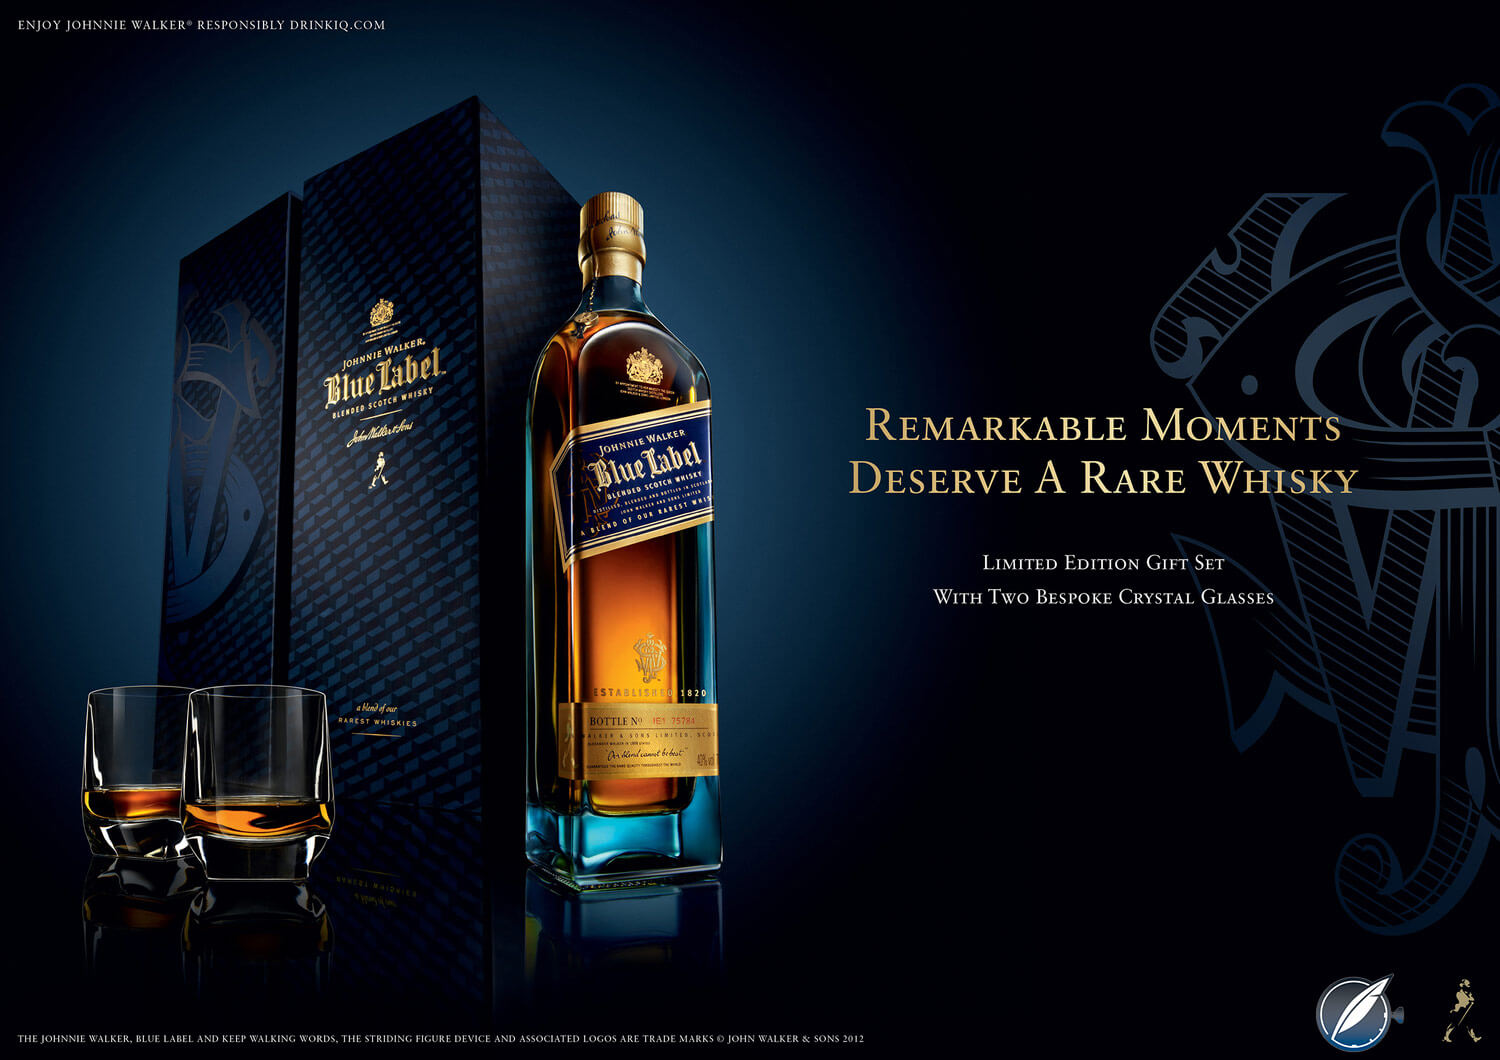 Johnnie Walker Blue Label advertisement